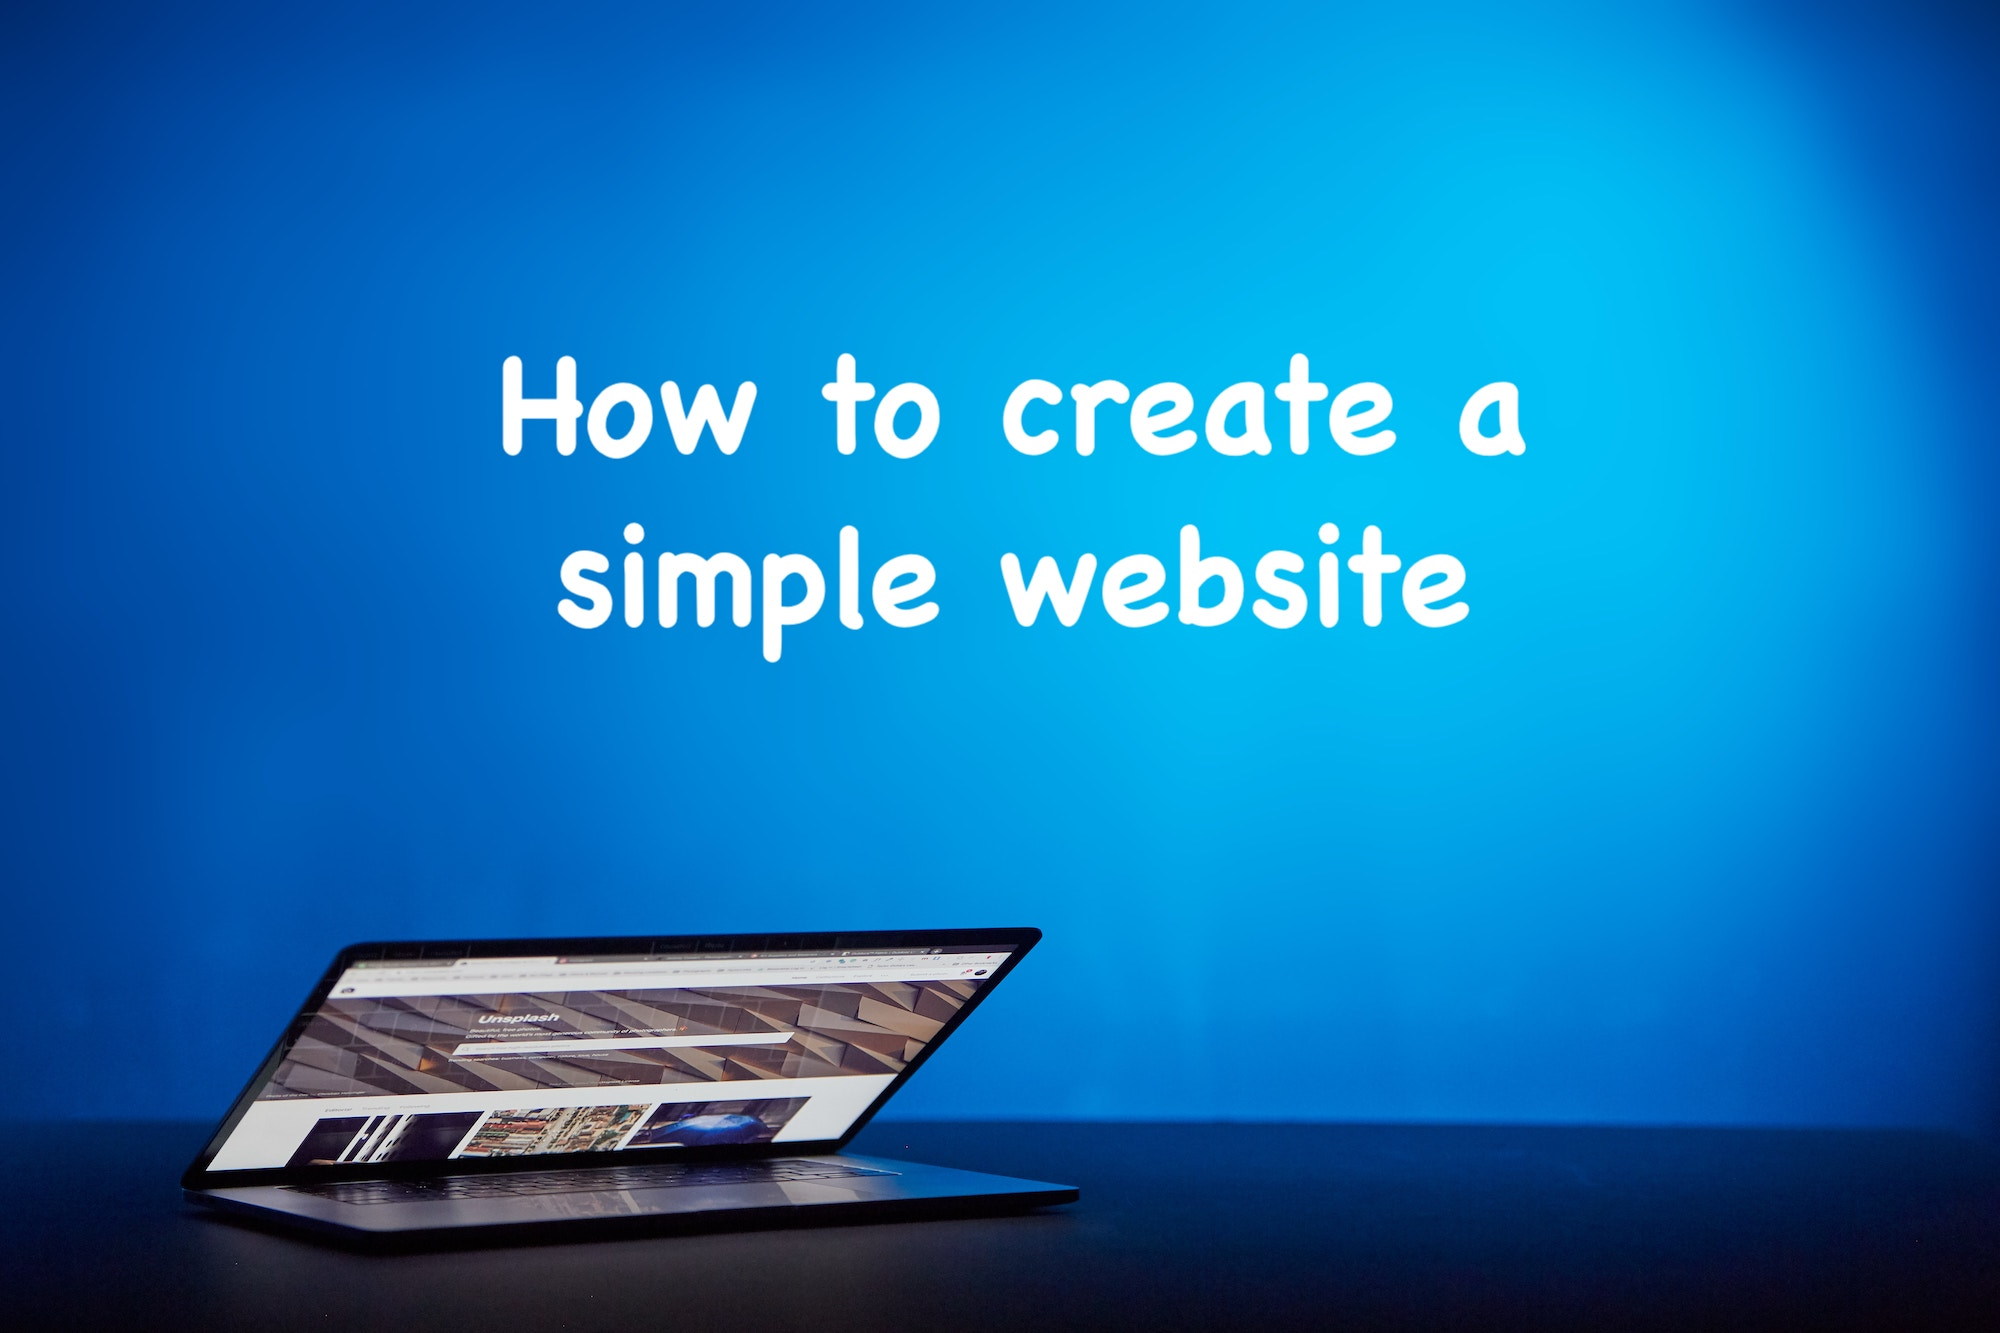 How to create and manage a simple website